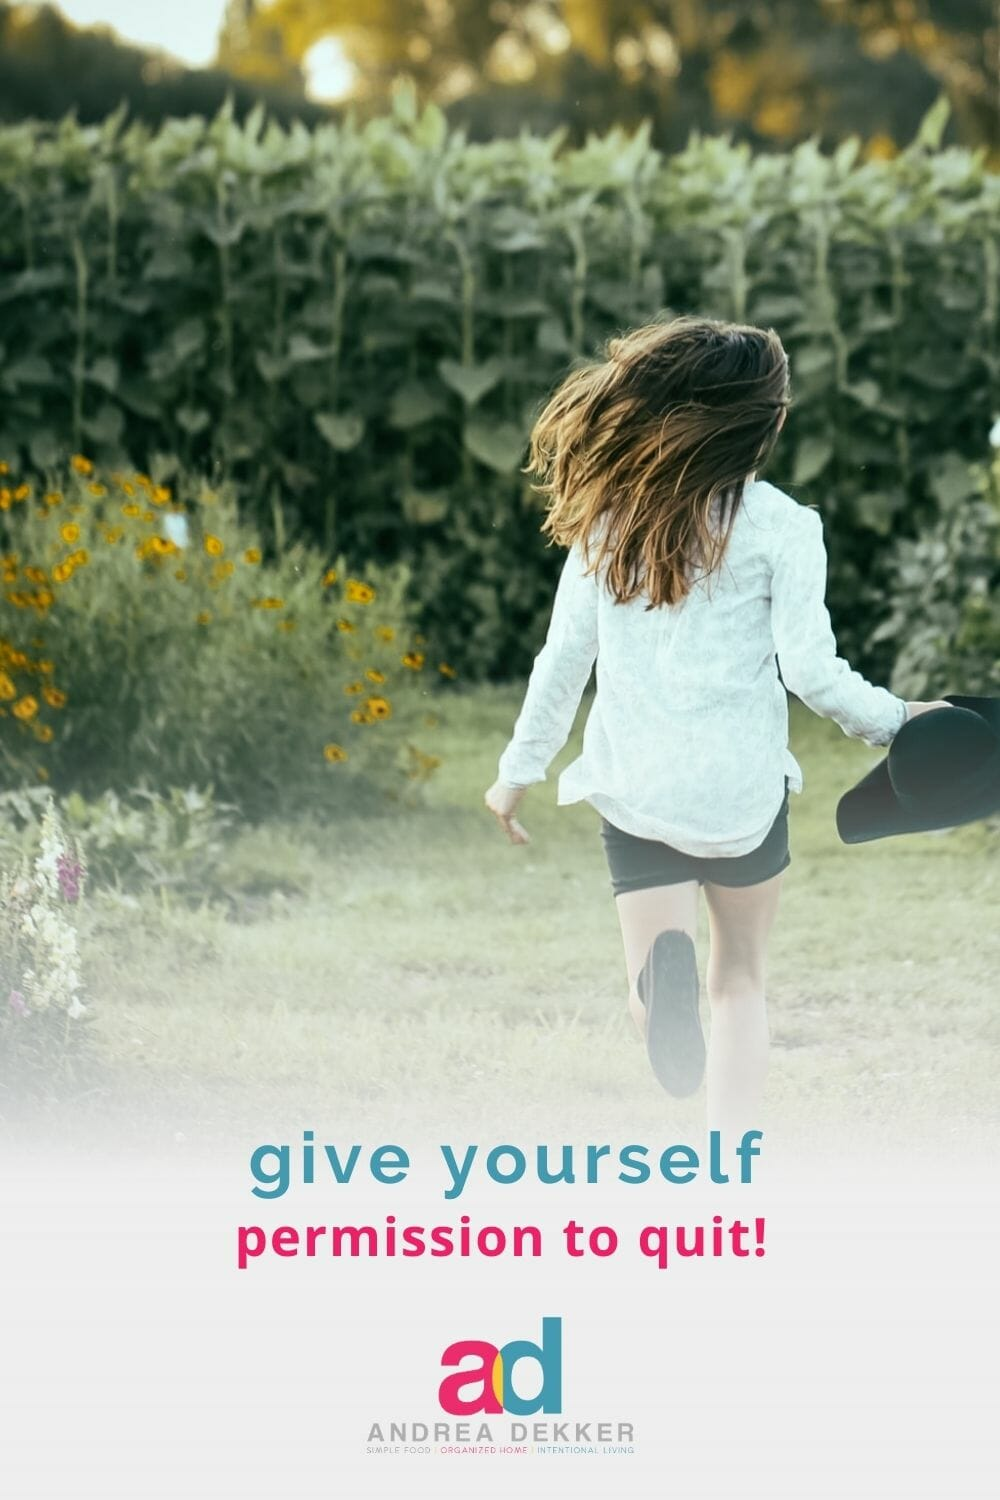 Less stress, less overwhelm, less guilt… more time, more joy, more freedom. These are just a few of the benefits you'll experience when you give yourself permission to quit a tradition that no longer works for your season of life. via @andreadekker